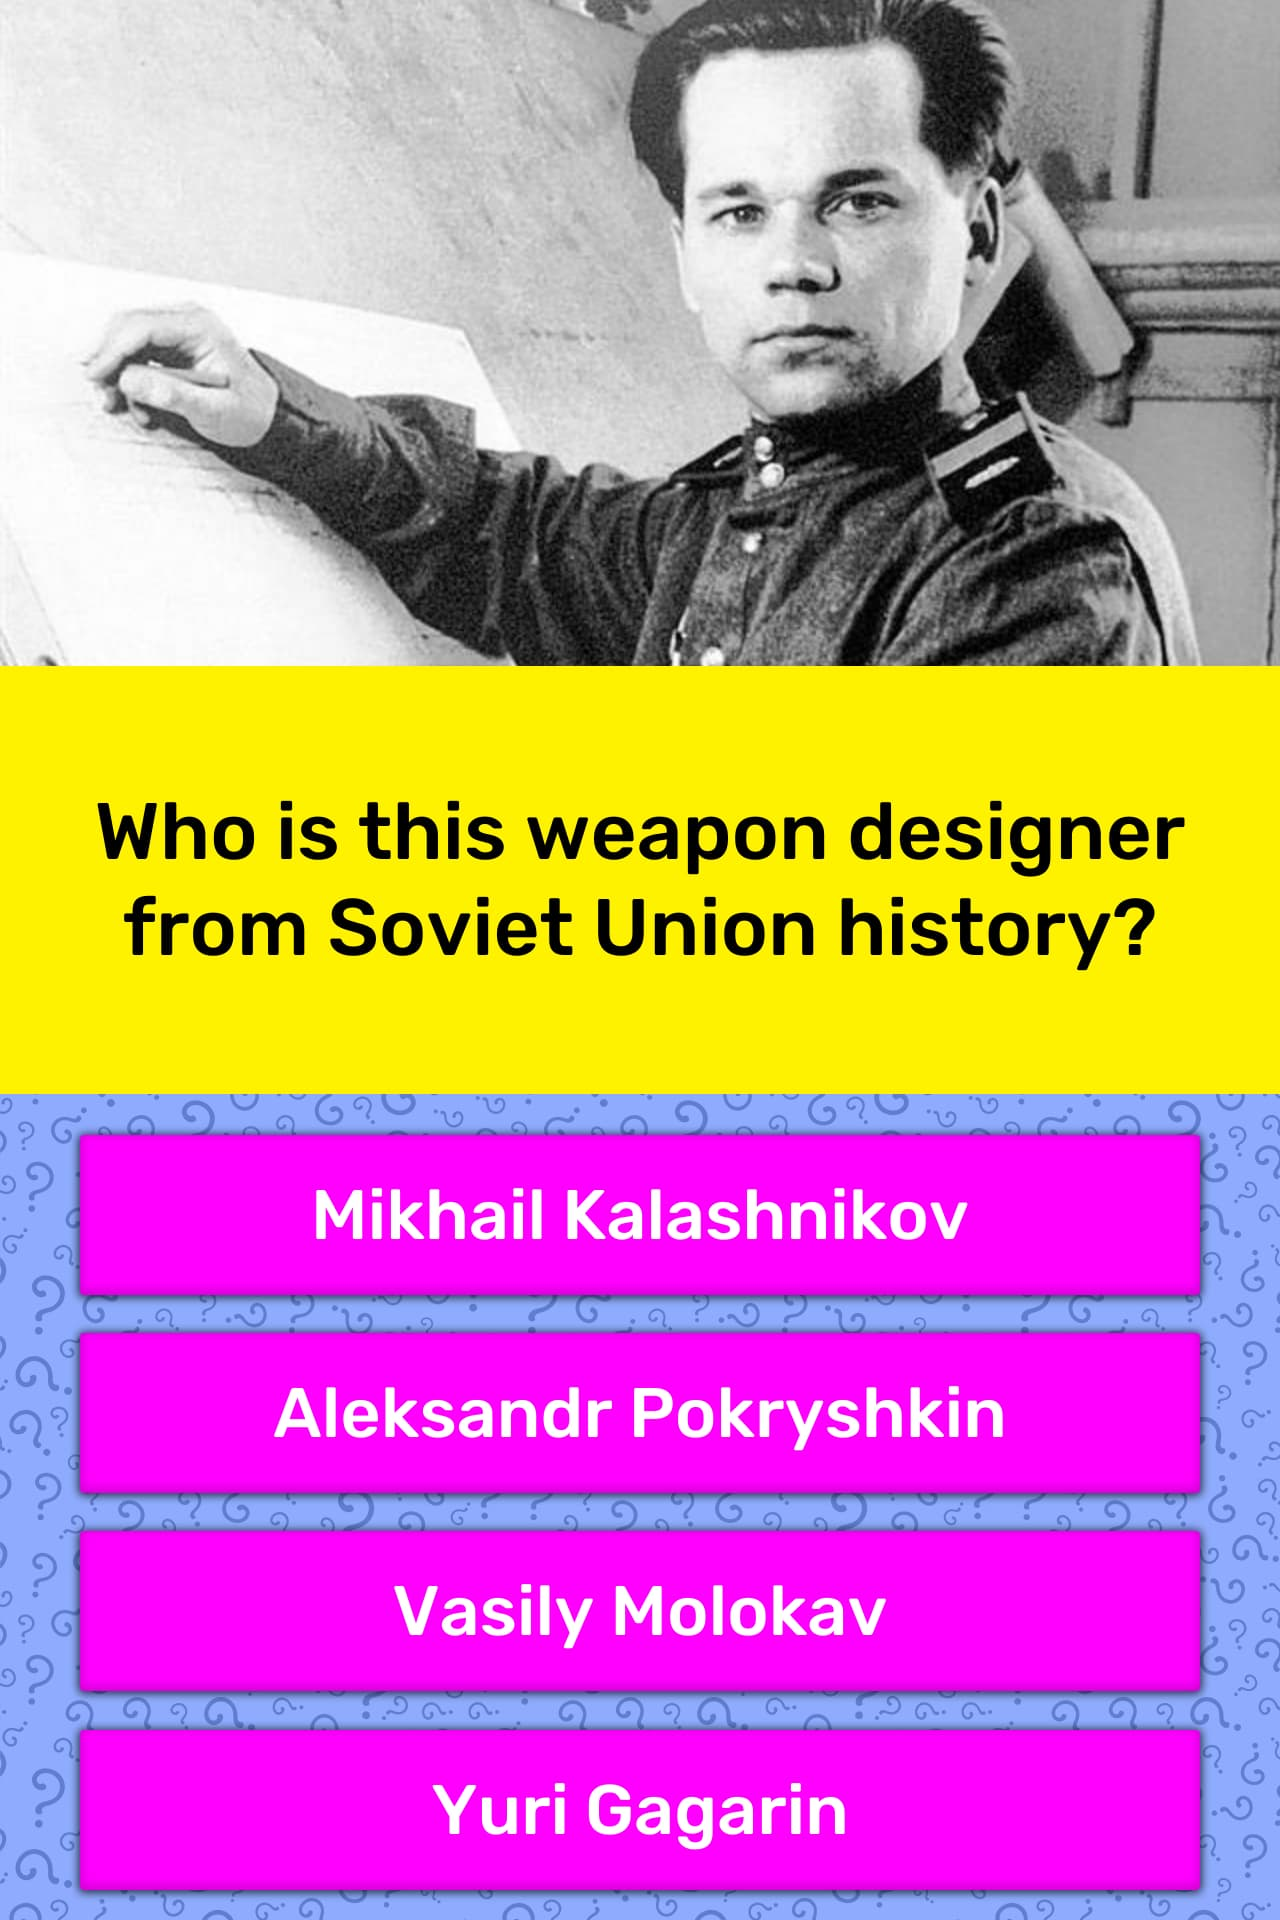 Who is this weapon designer from    | Trivia Answers | QuizzClub